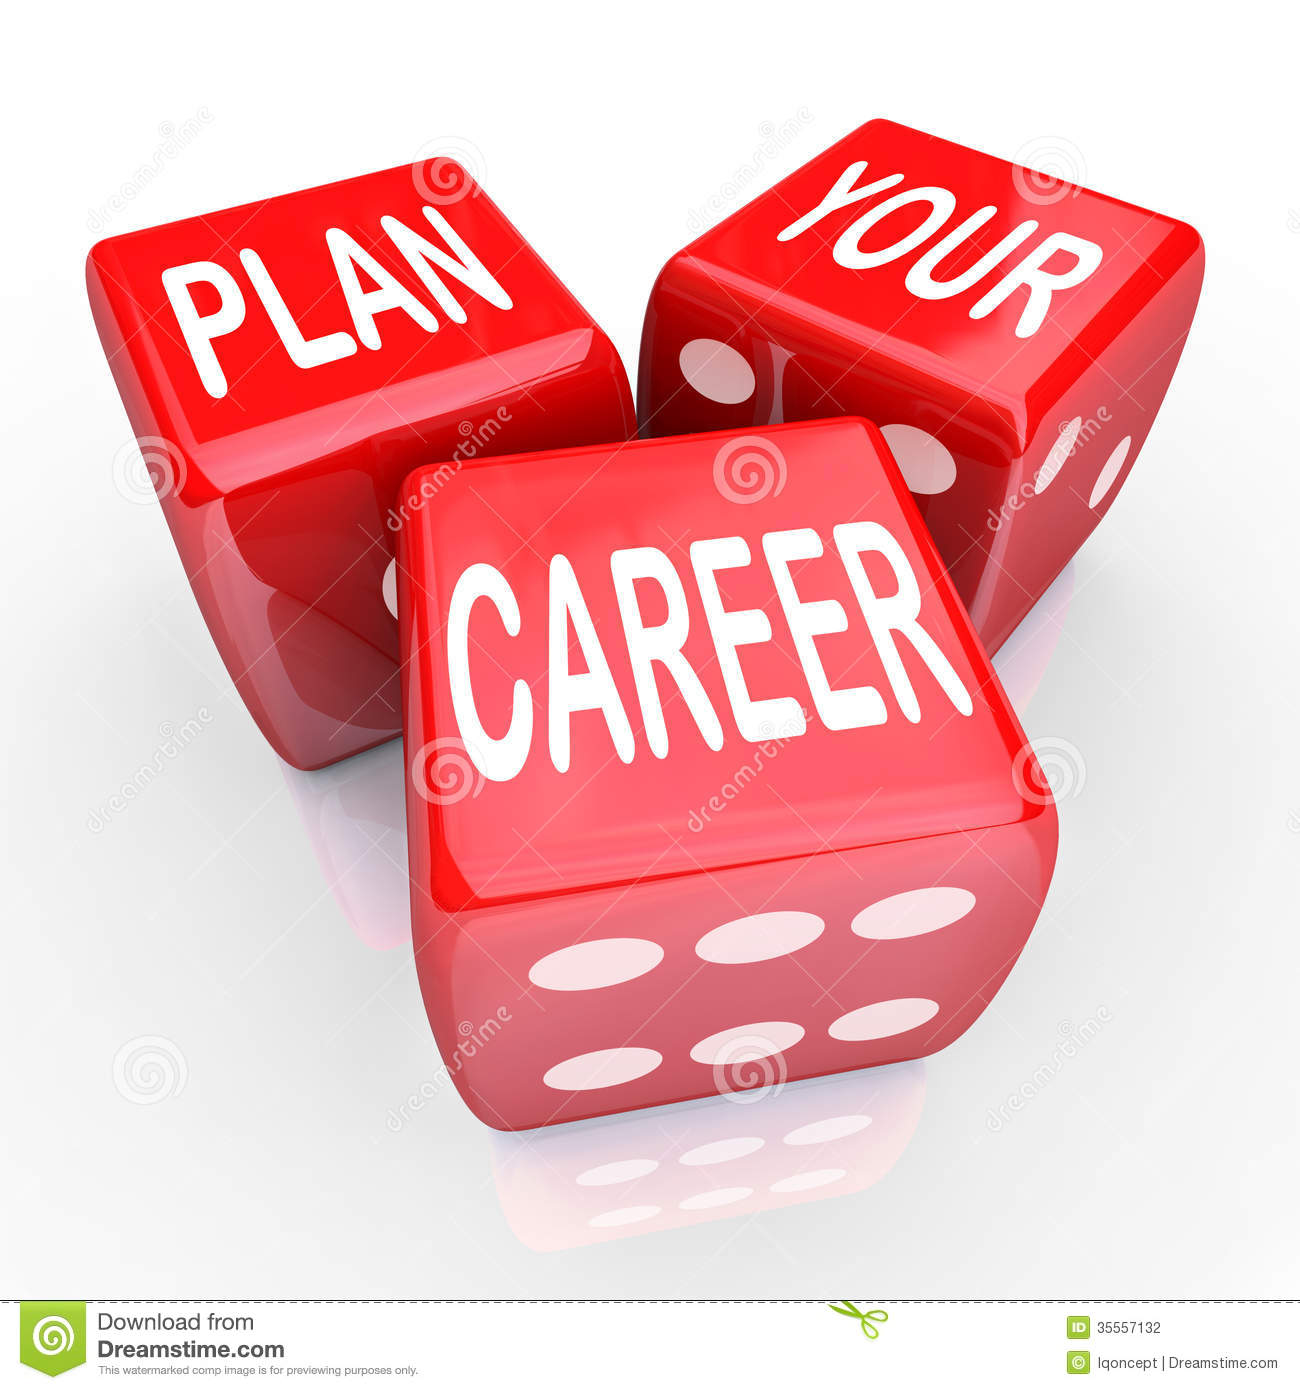 plan your career dice gamble future opportunity stock photography plan your career dice gamble future opportunity